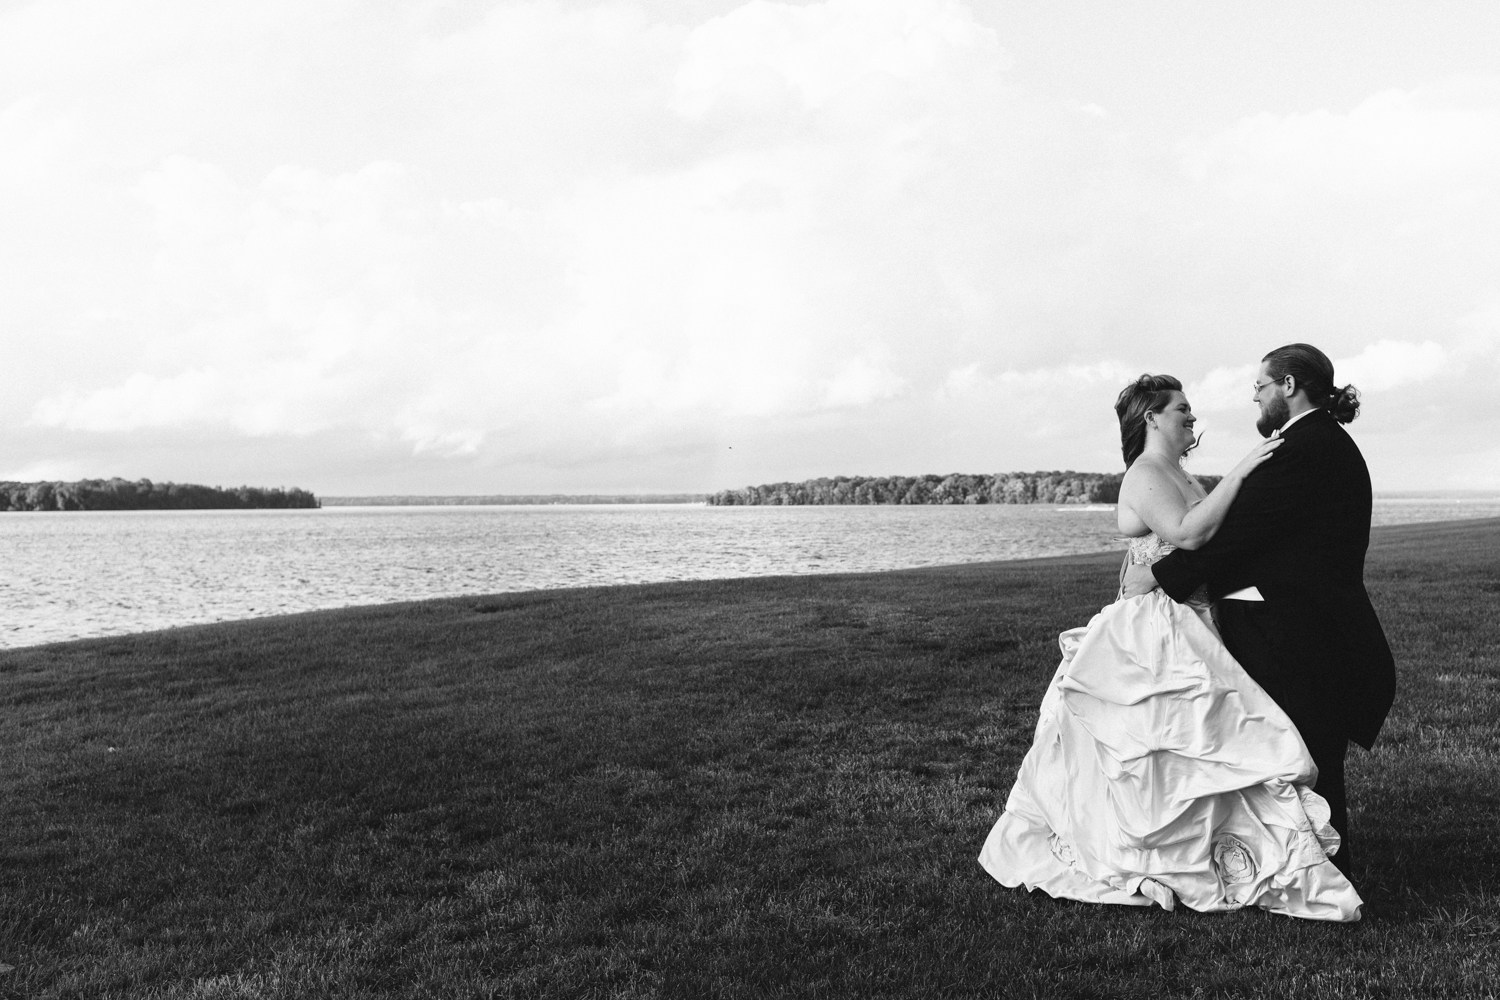 Black and white image of a bride and groom standing near a lake. Bride is wearing a ball gown.